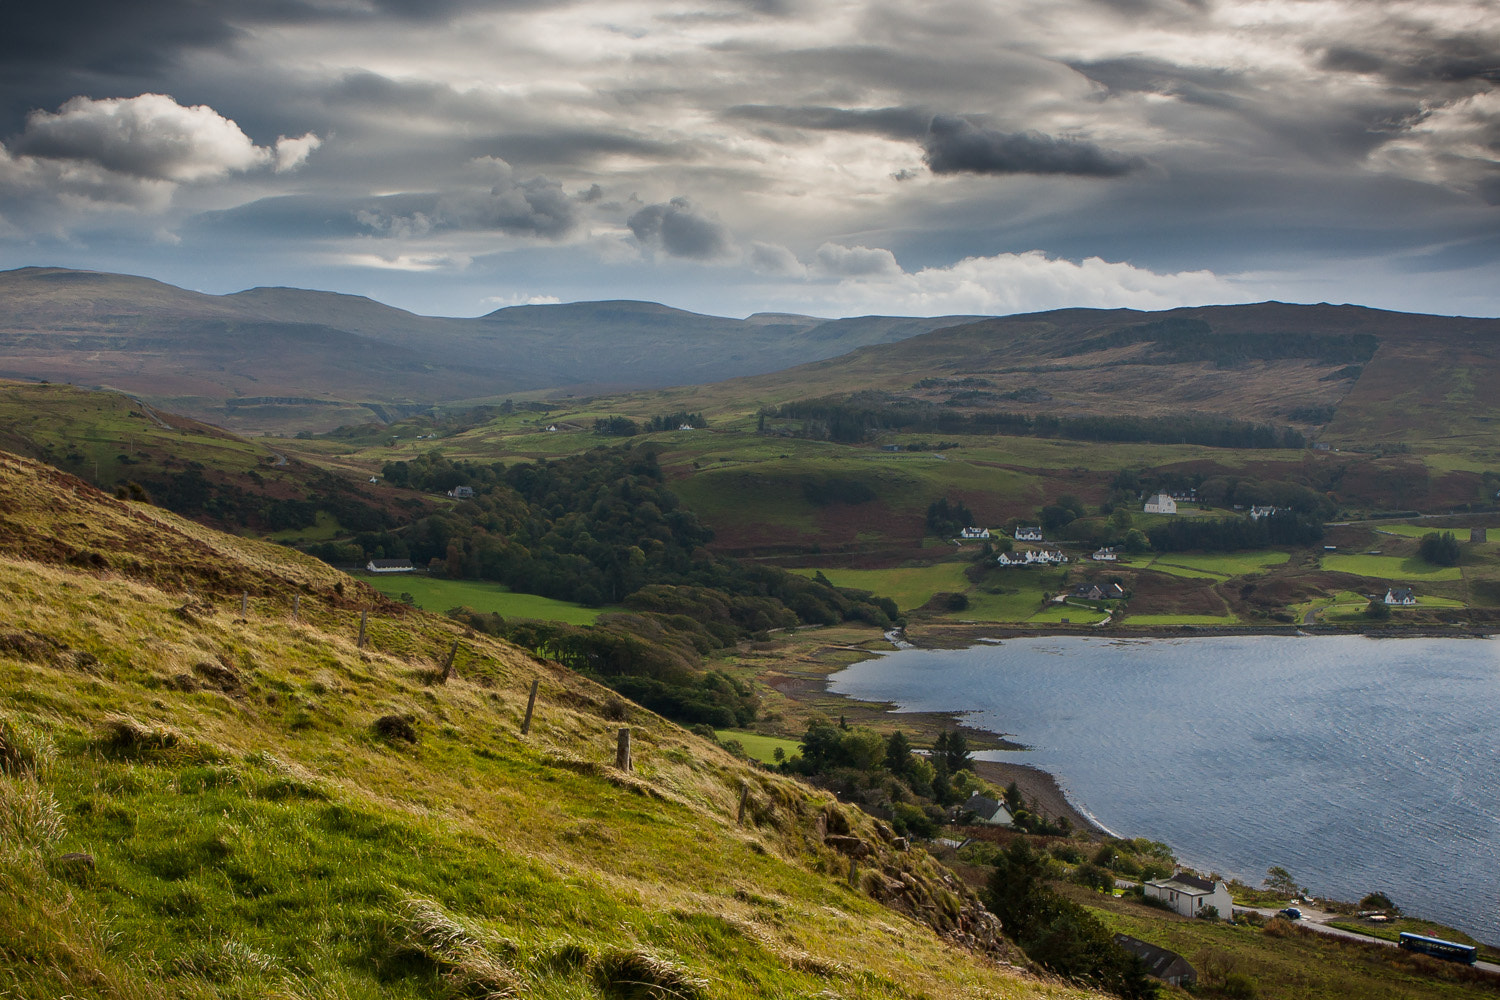 Photograph Clouds over Scotland by Michael Backes on 500px